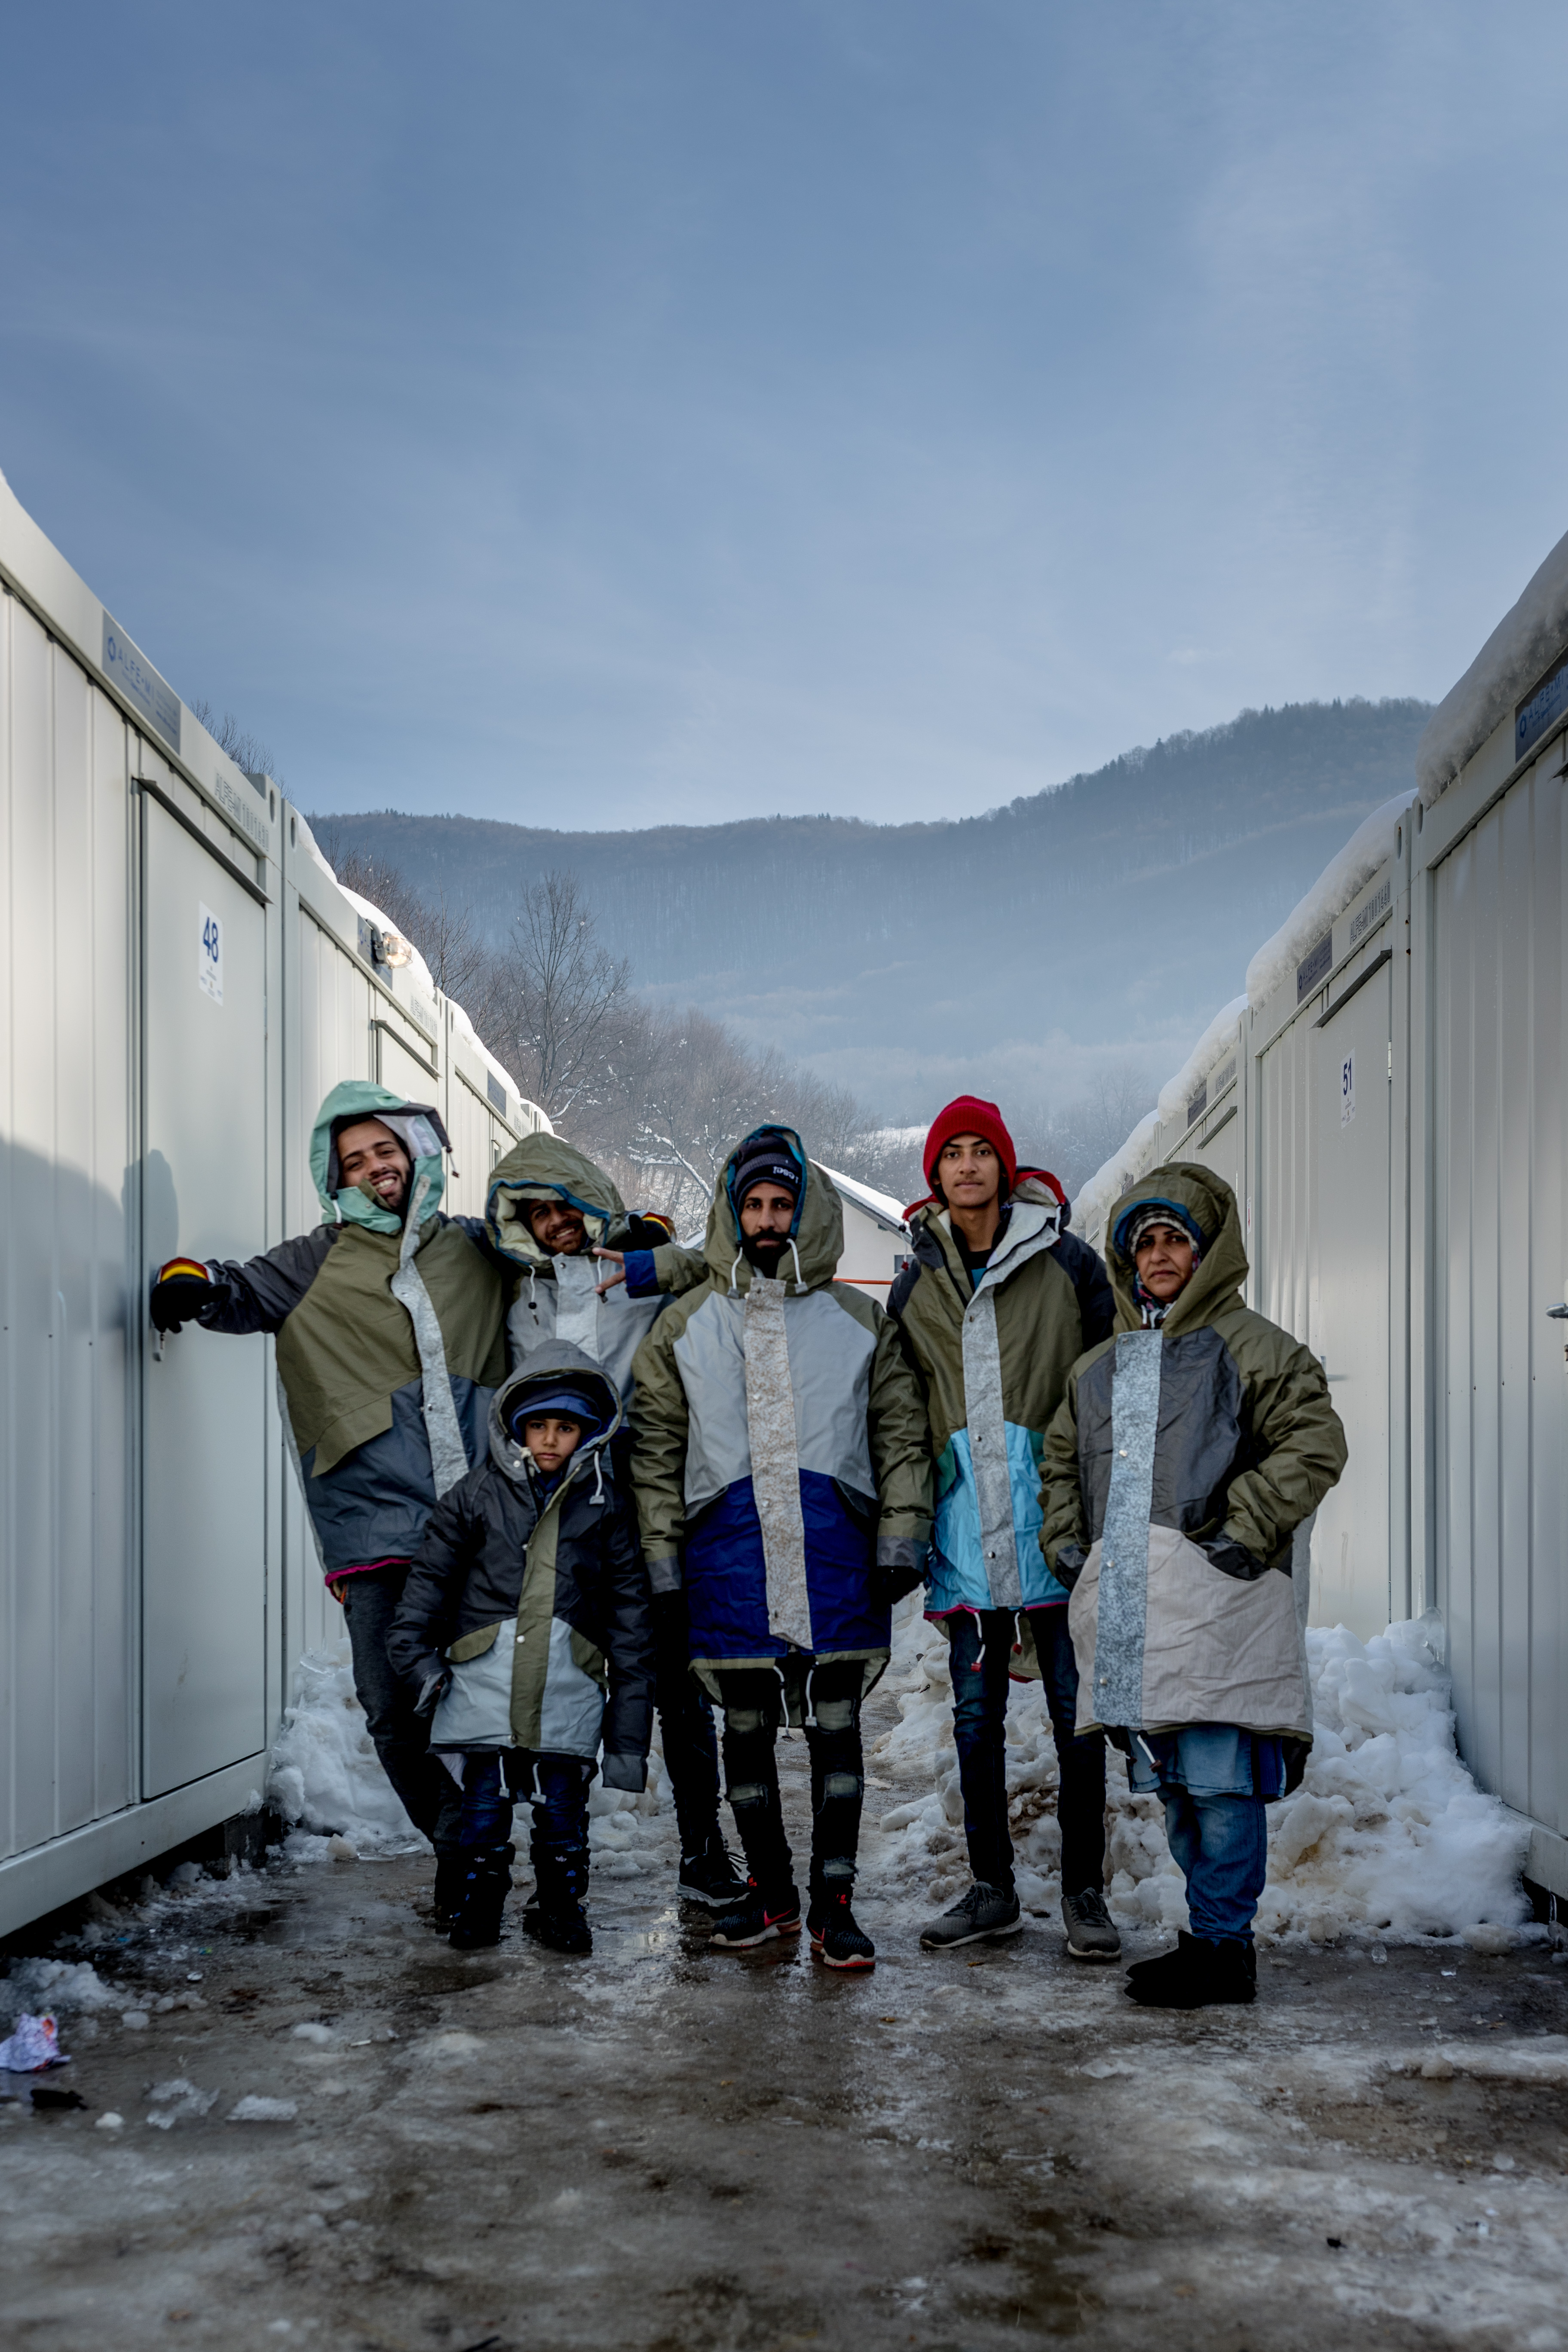 Irakese familie in hun Sheltersuit